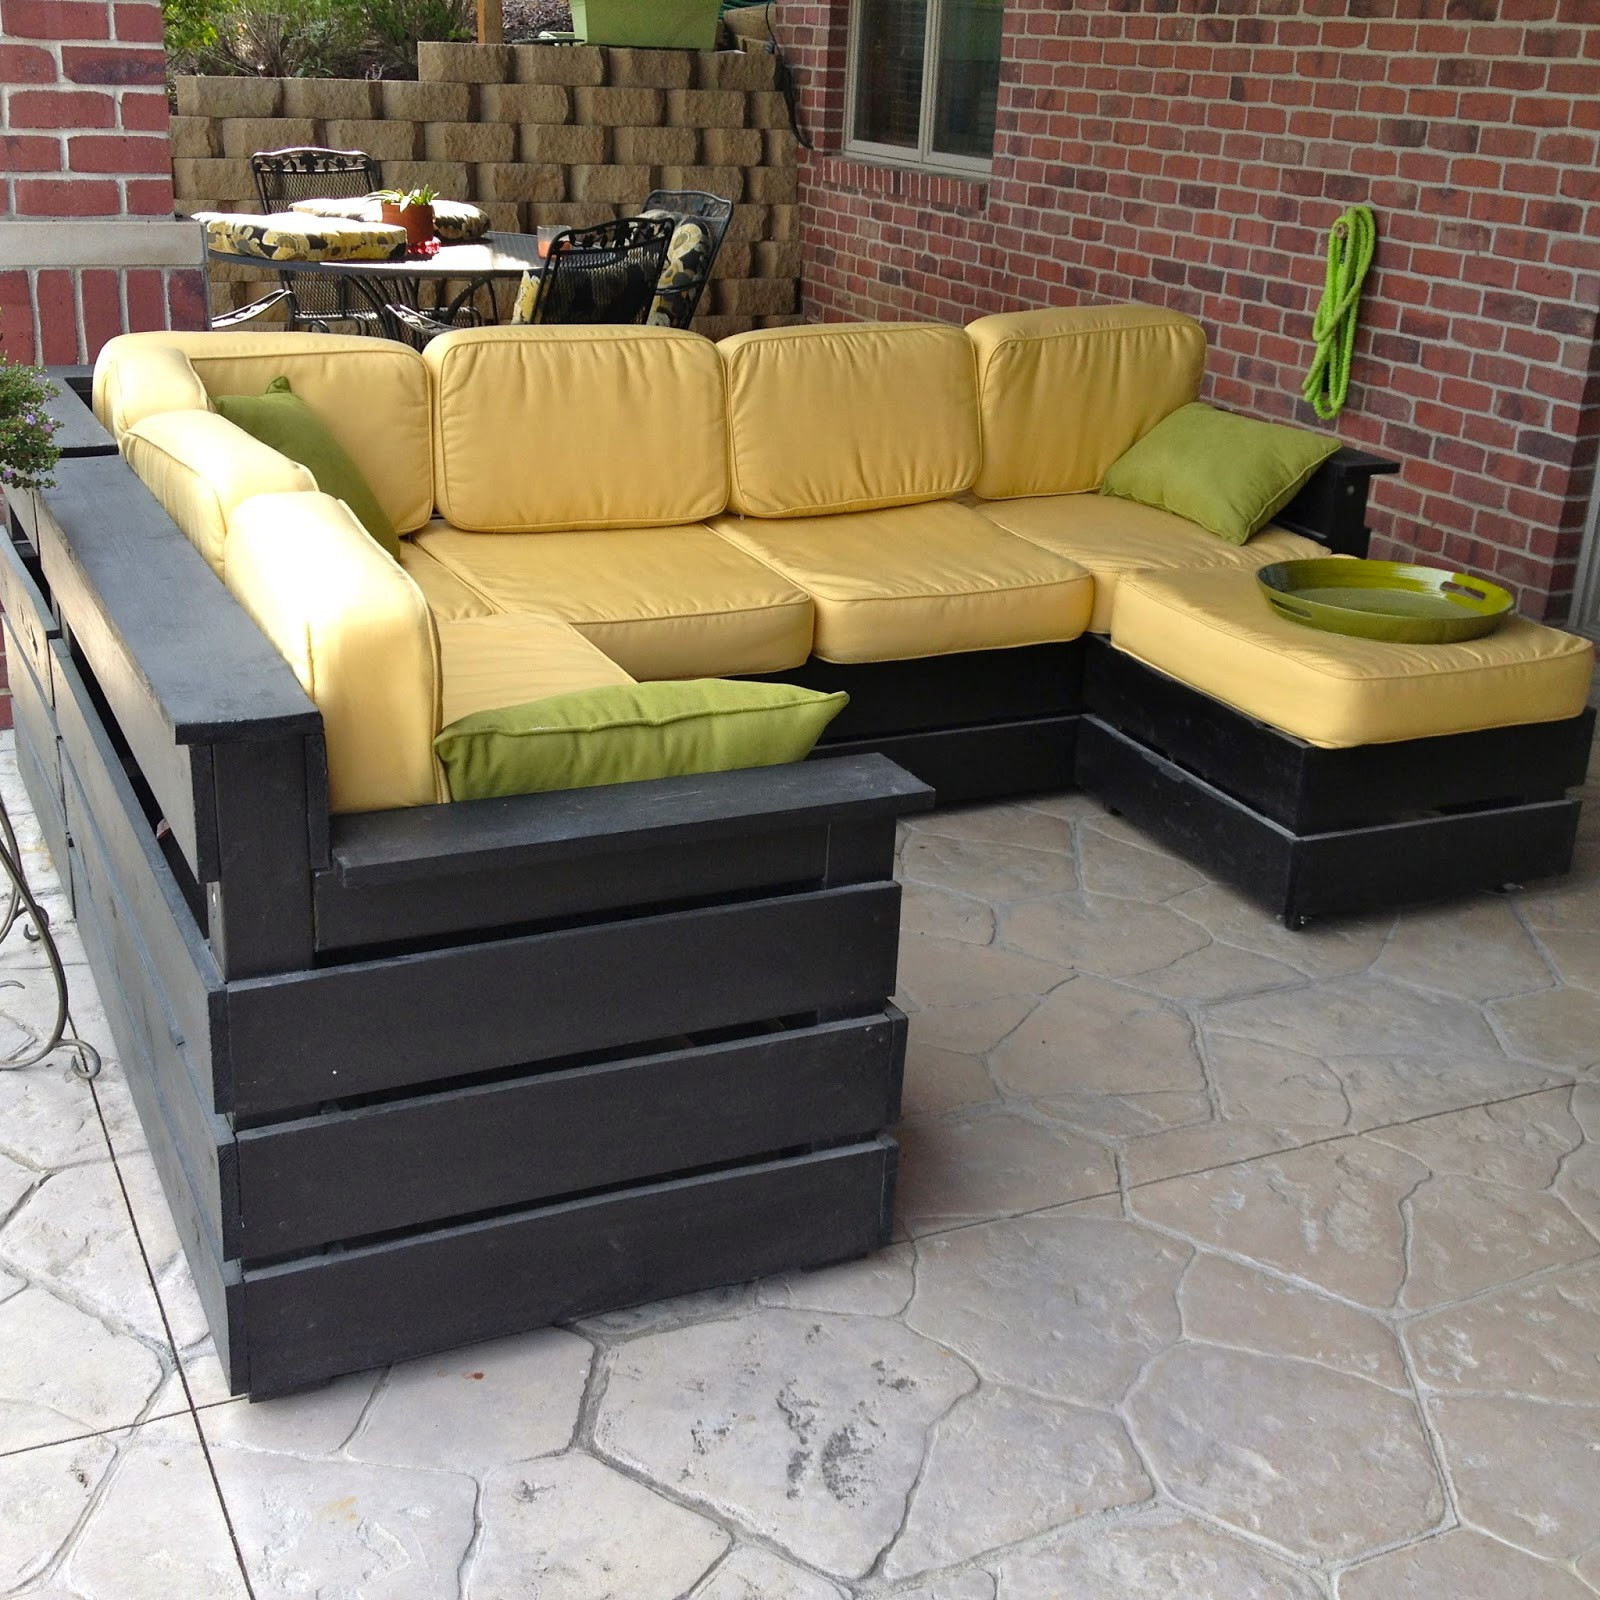 DIY Outdoor Sectional Plans  DIY Why Spend More DIY Outdoor Sectional